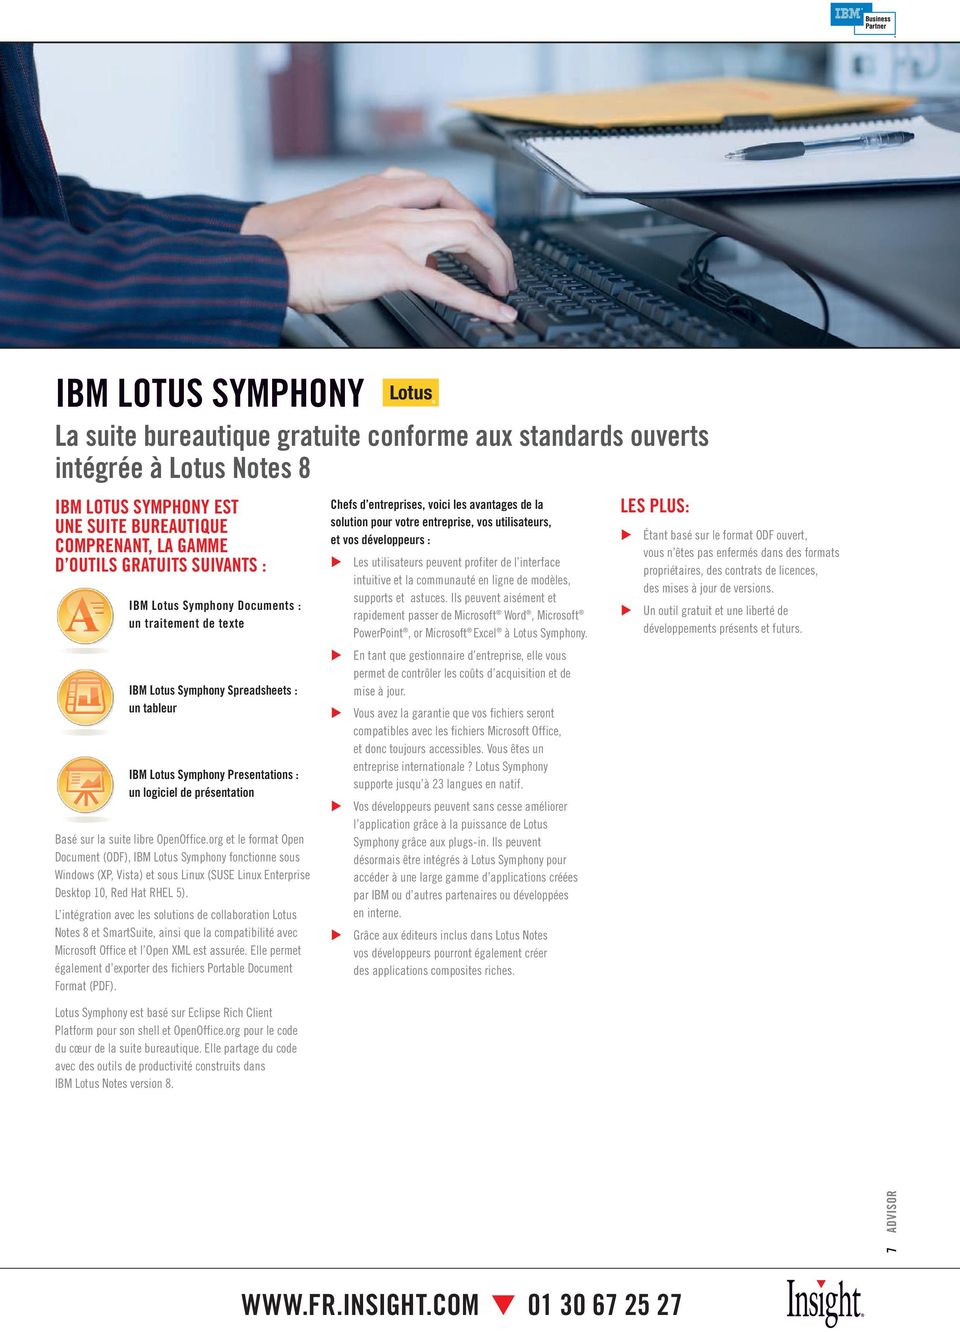 org et le format Open Document (ODF), IBM Lotus Symphony fonctionne sous Windows (XP, Vista) et sous Linux (SUSE Linux Enterprise Desktop 10, Red Hat RHEL 5).